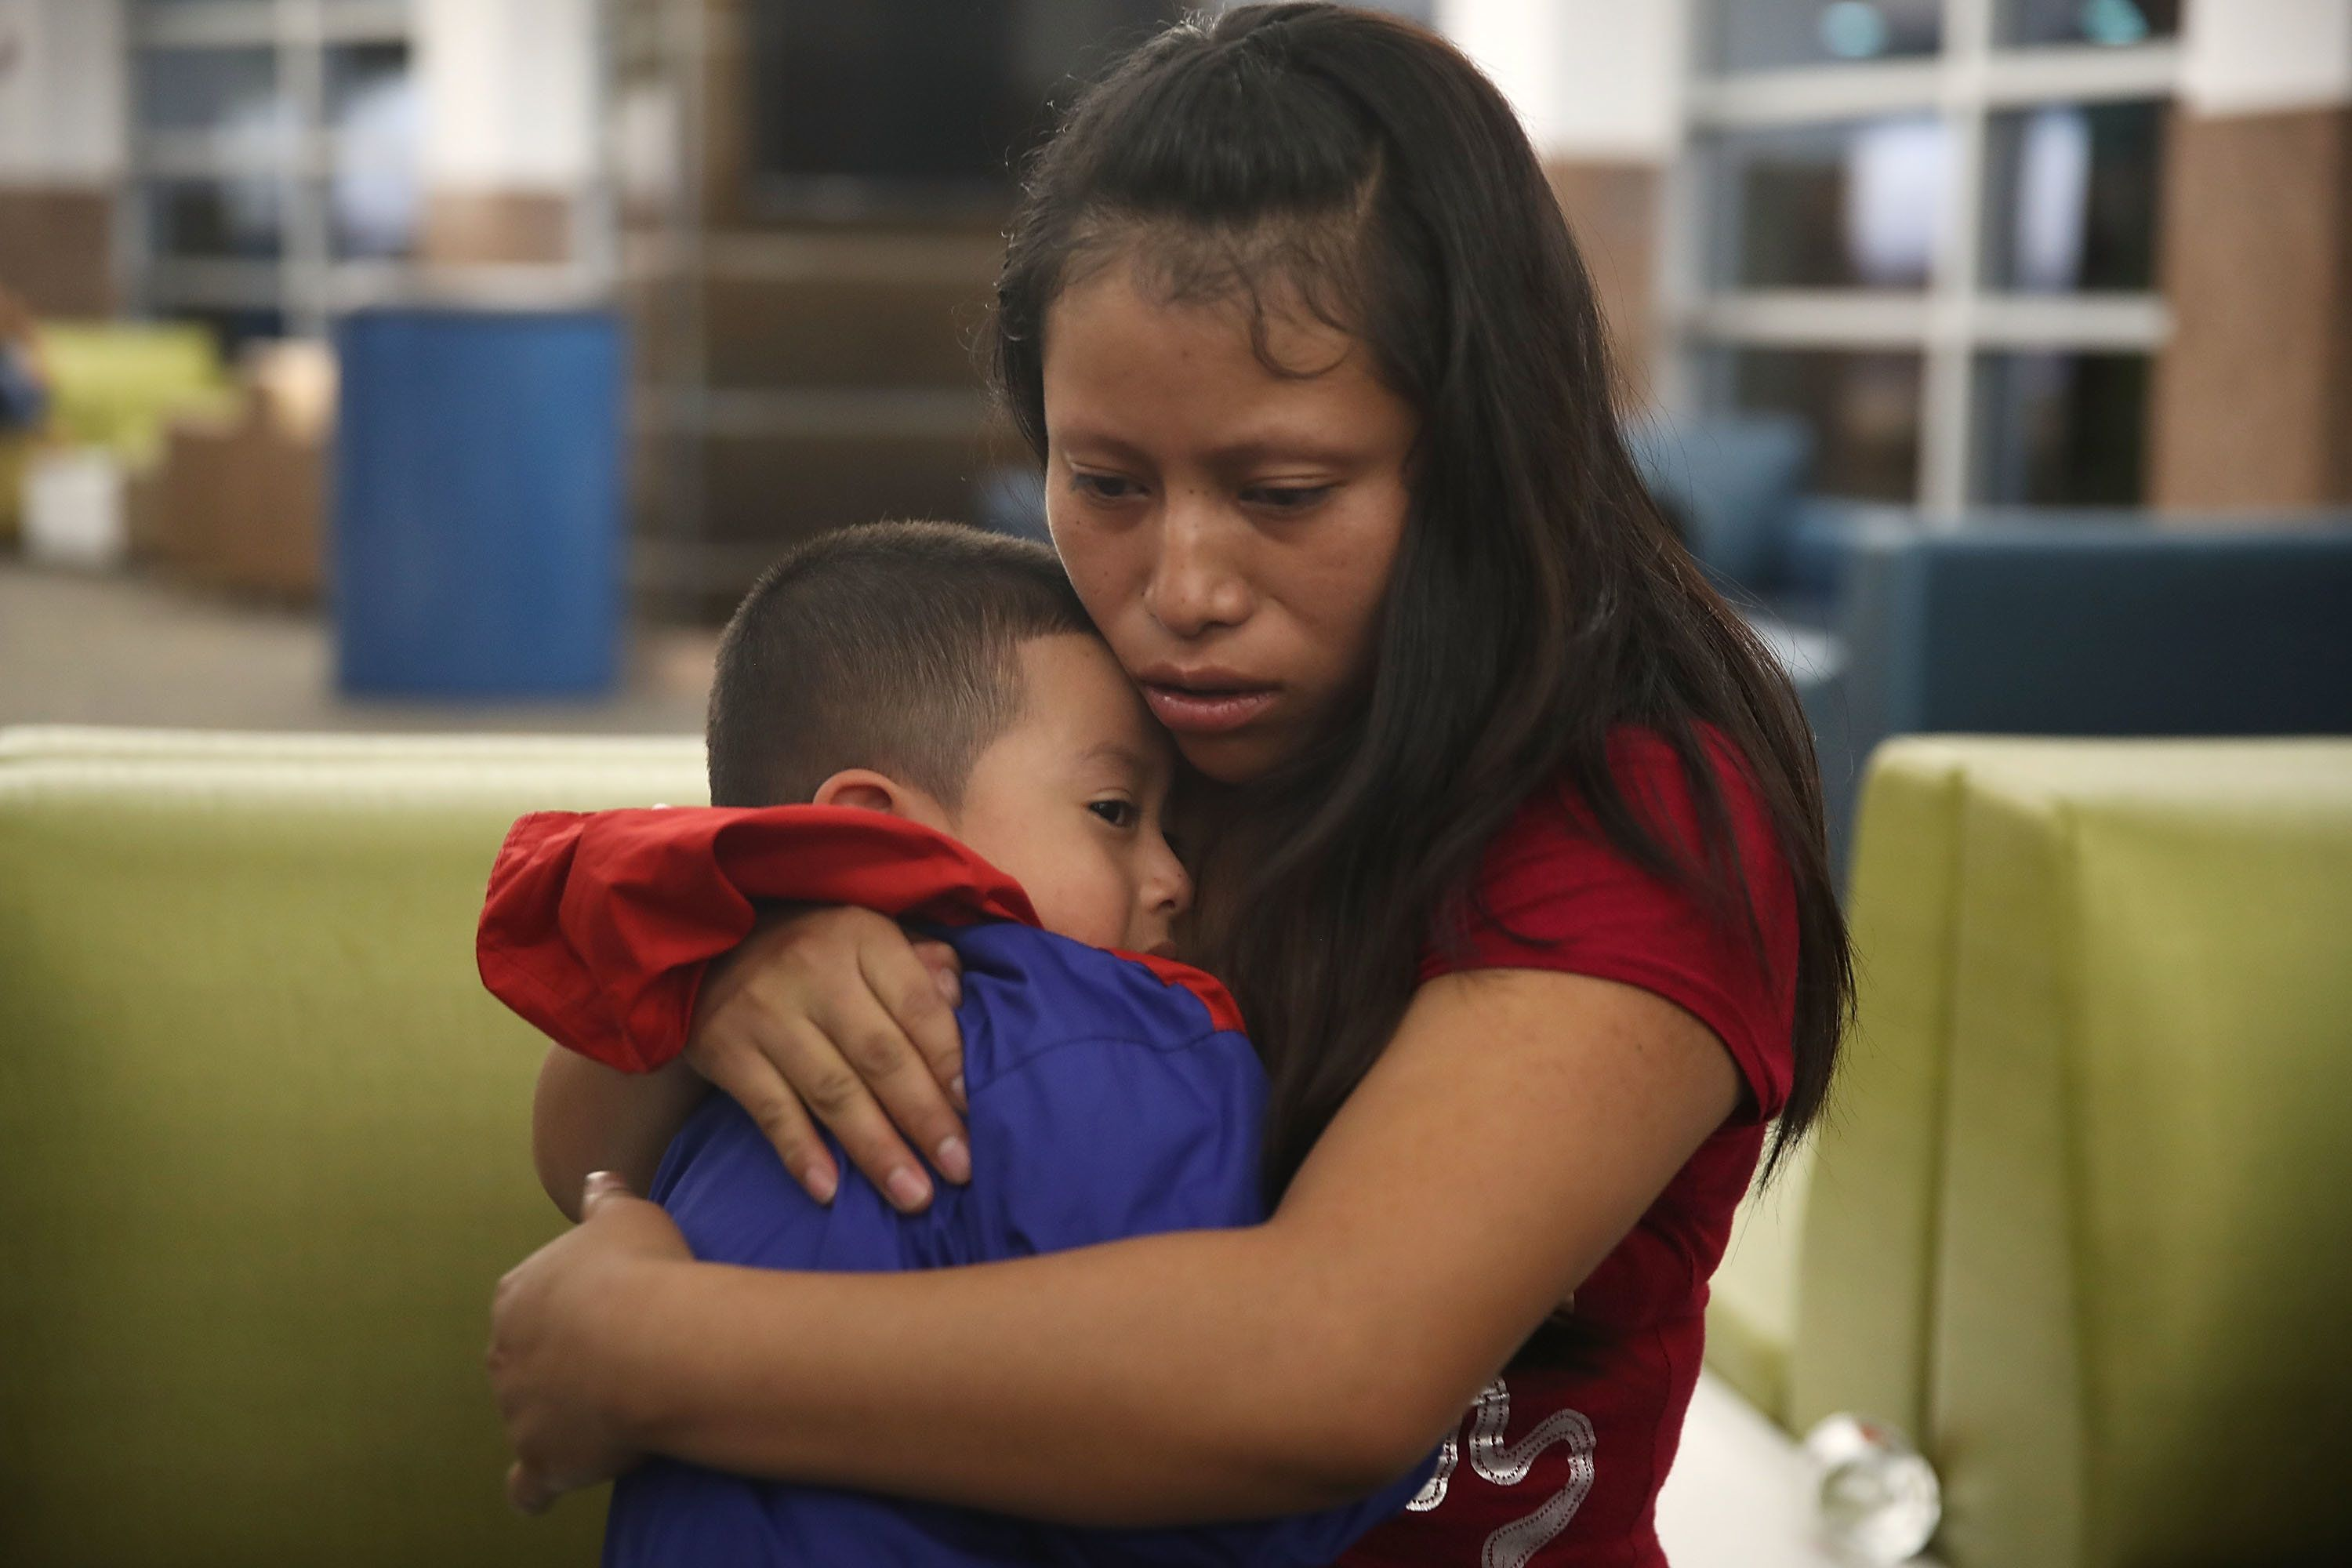 EL PASO, TX - JULY 26:  A woman, identified only as Maria, is reunited with her son Franco, 4,  at the El Paso International Airport on July 26, 2018 in El Paso, Texas. Maria, originally from Guatemala, was reunited with Franco, who was being held in New York, after being separated for one month when they  crossed into the United States. Today was a court-ordered deadline for the U.S. government to reunite as many as 2,551 migrant children ages 5 to 17 that had been separated from their families.  (Photo by Joe Raedle/Getty Images)